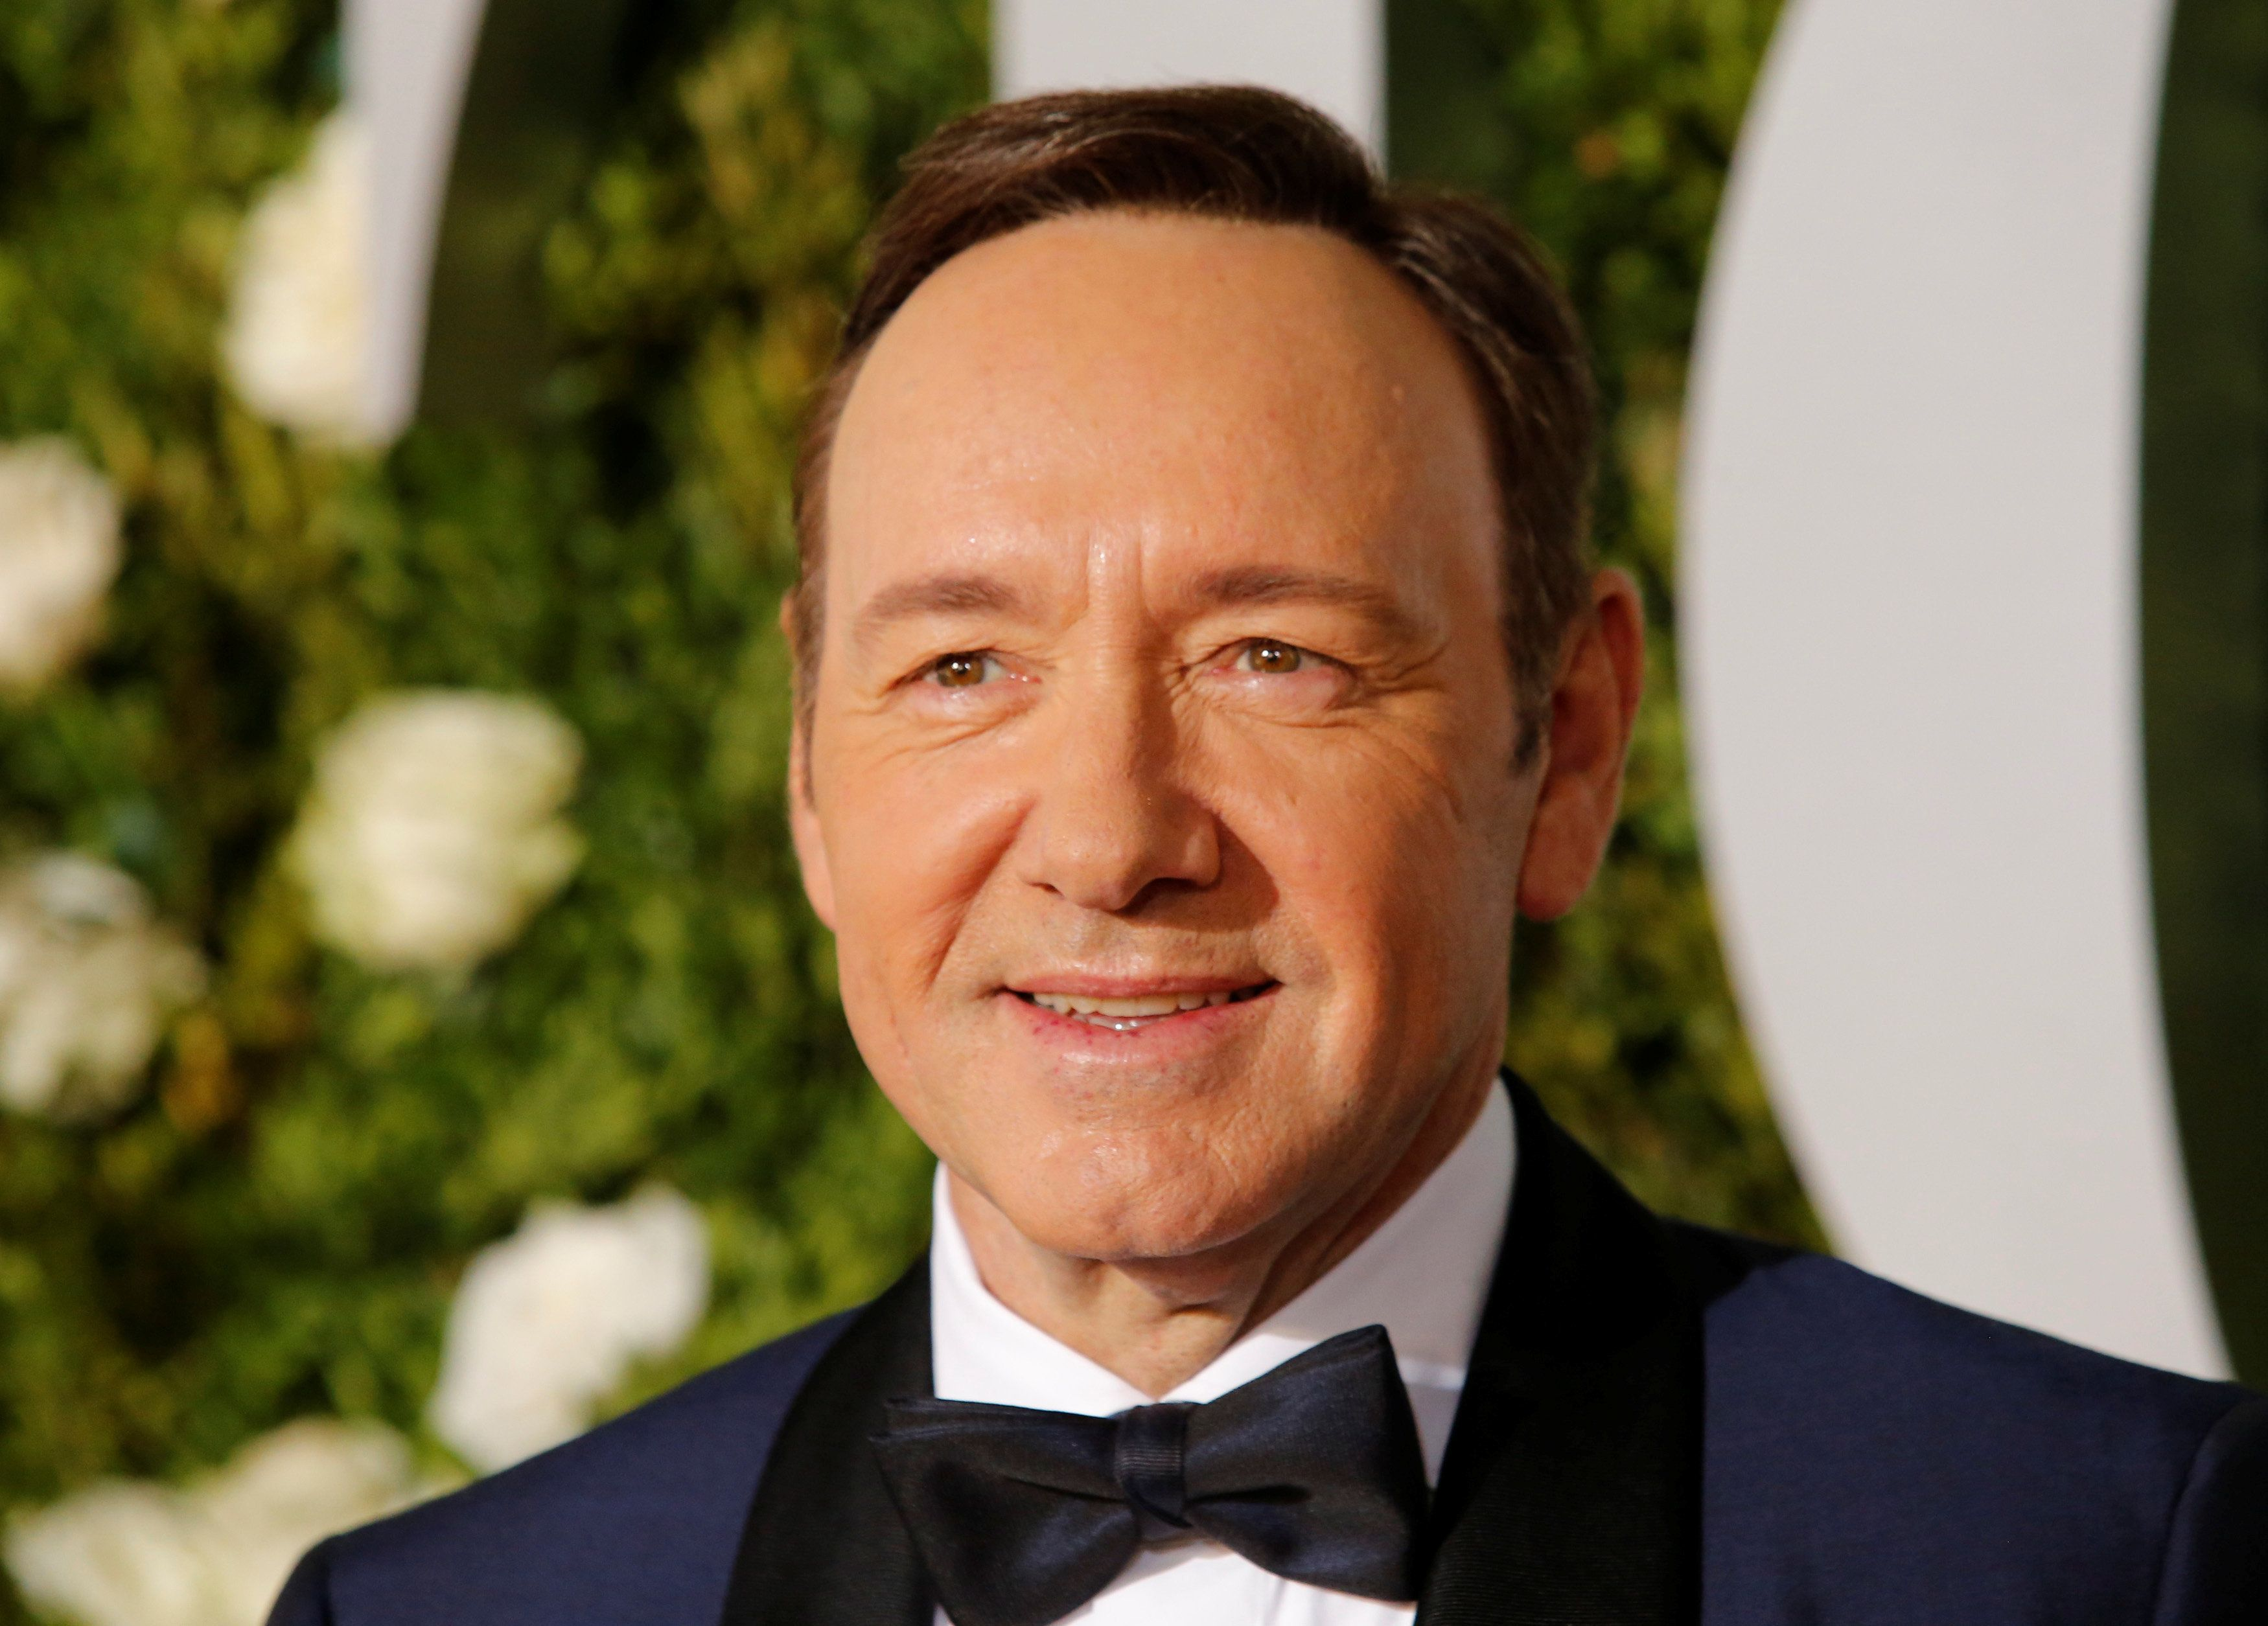 Kevin Spacey's First Film Since Sexual Misconduct Allegations Takes Less Than $130 Upon Release